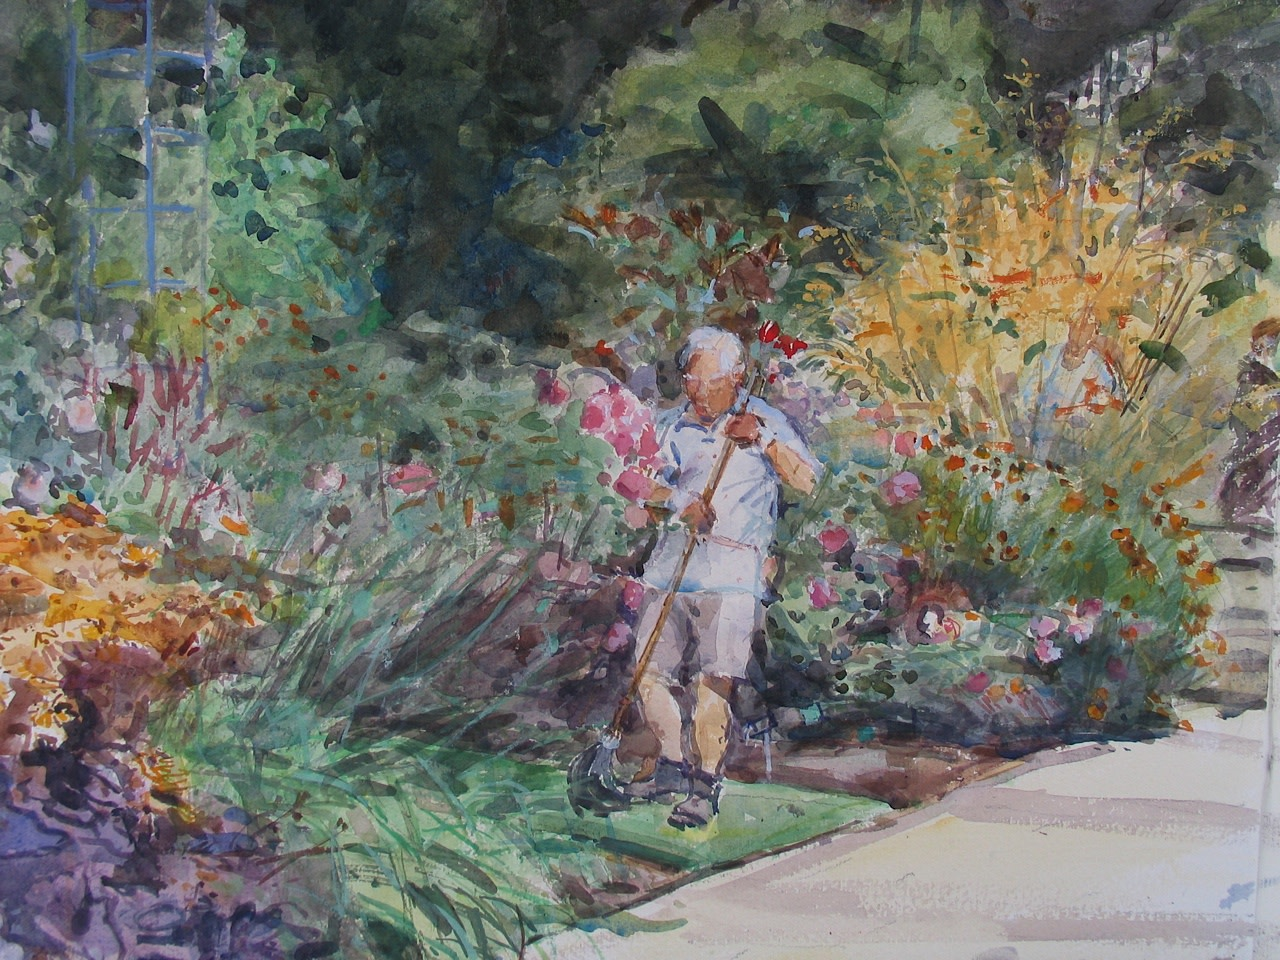 """<span class=""""link fancybox-details-link""""><a href=""""/artists/73-mary-jackson/works/9541-mary-jackson-gardening-in-august-wisley/"""">View Detail Page</a></span><div class=""""artist""""><span class=""""artist""""><strong>Mary Jackson</strong></span></div><div class=""""title""""><em>Gardening in August, Wisley</em></div><div class=""""medium"""">watercolour</div>"""